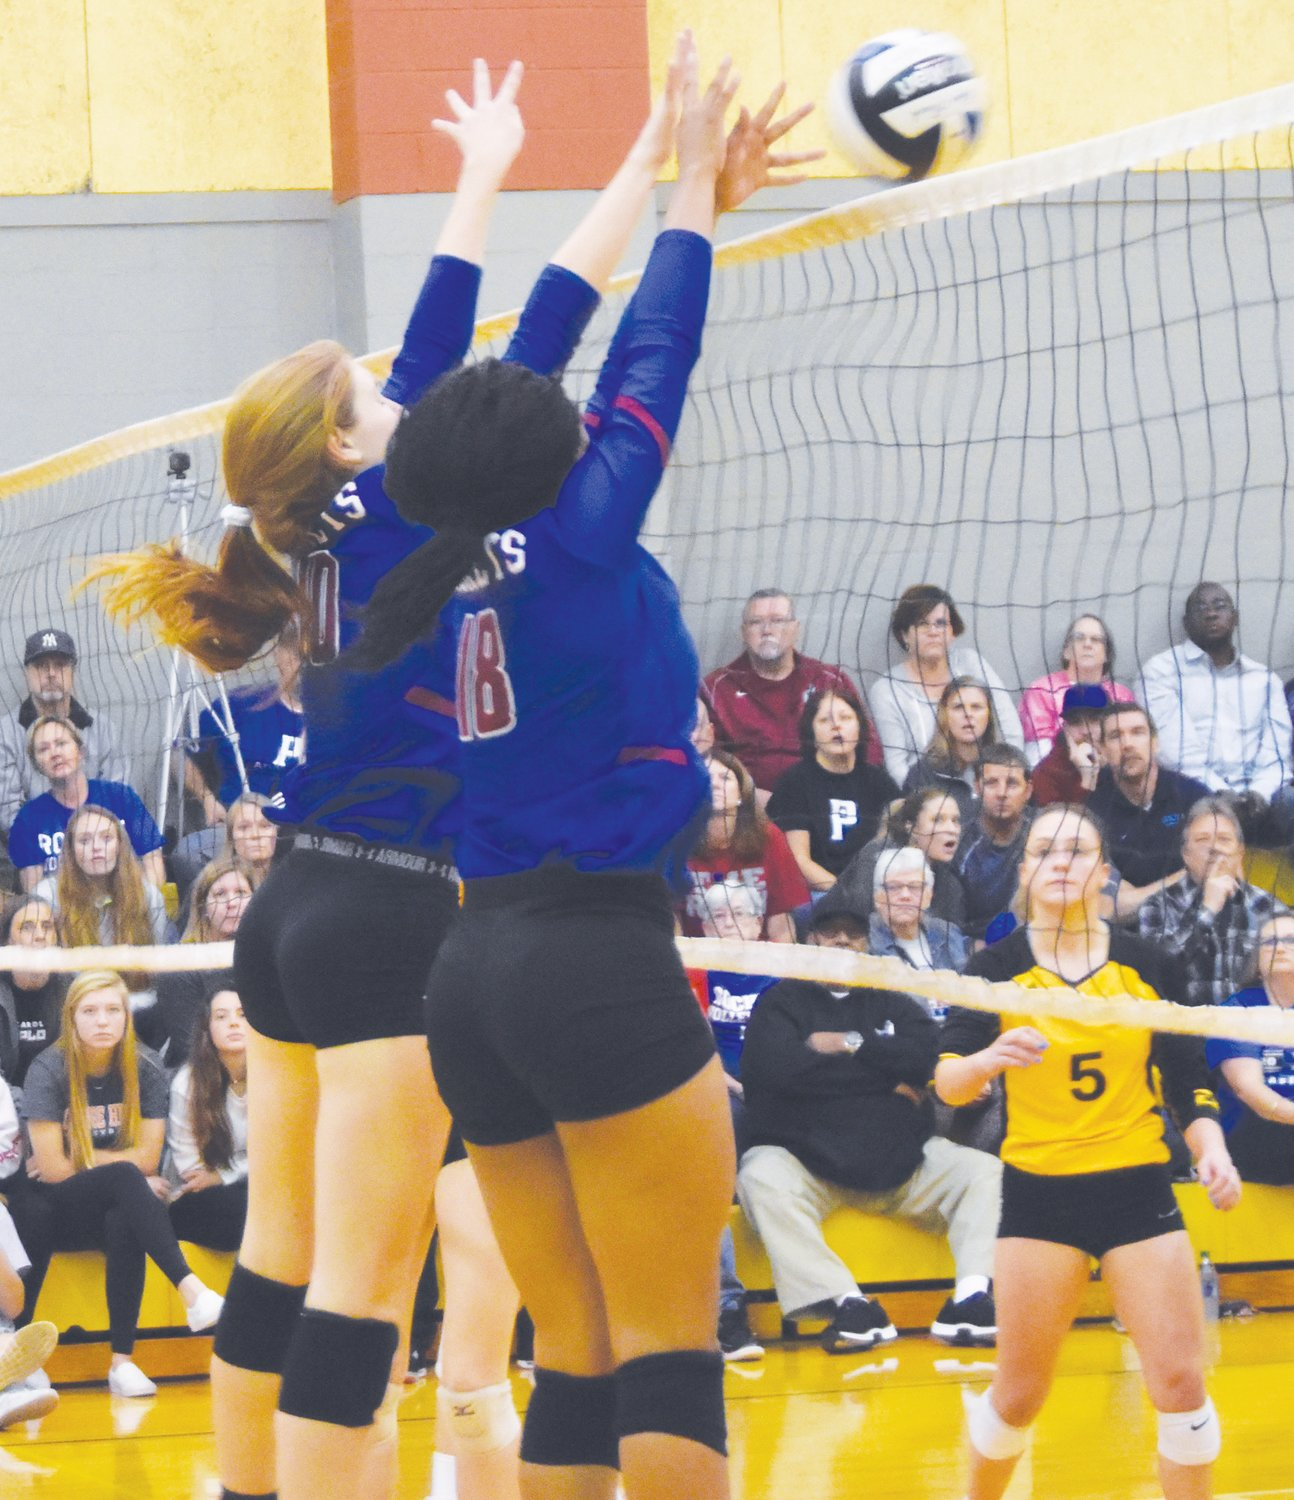 Rockets junior Aaliyah Jones (18) and captain Karoline Cox (10) time their jump perfectly to record the block against the Tigers.